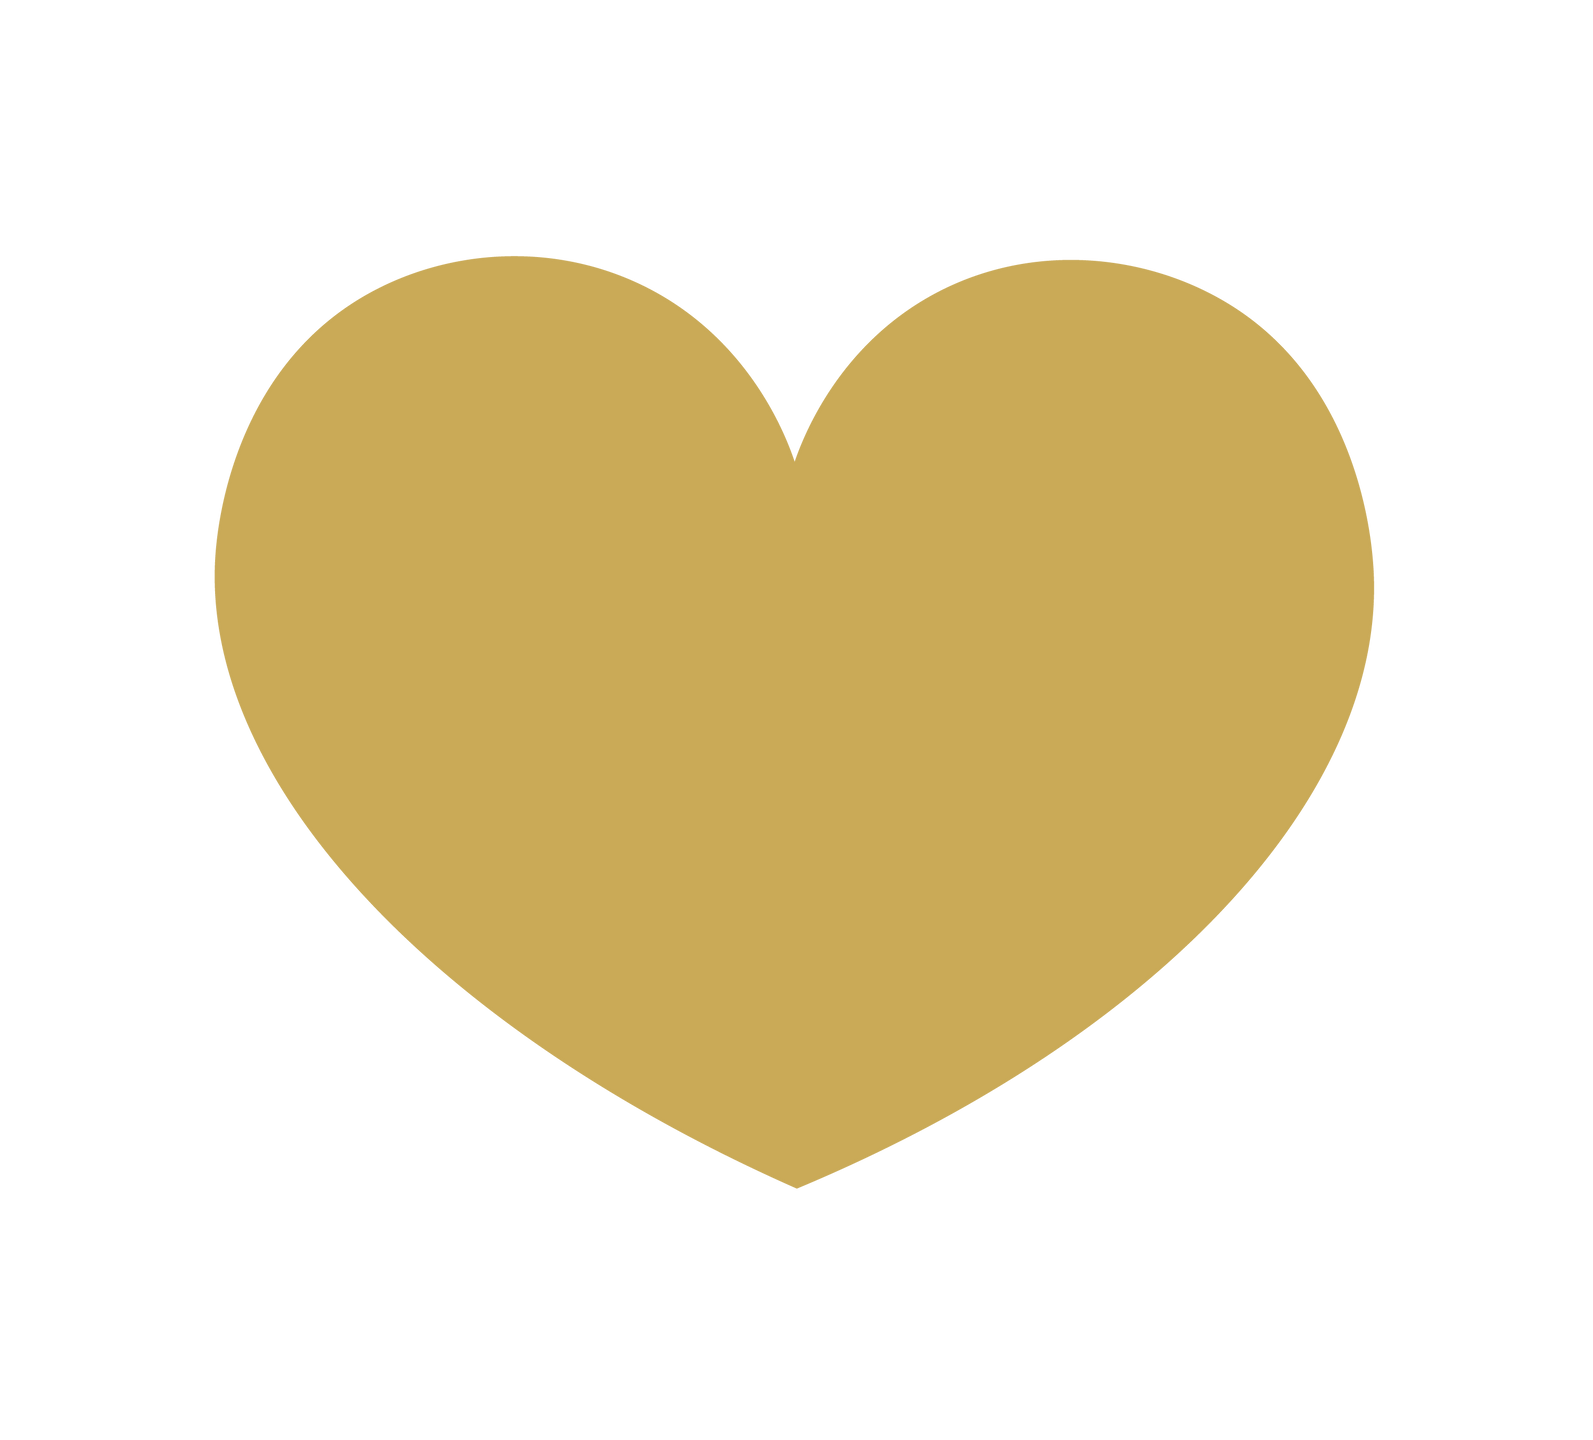 Graphic of a Golden Heart